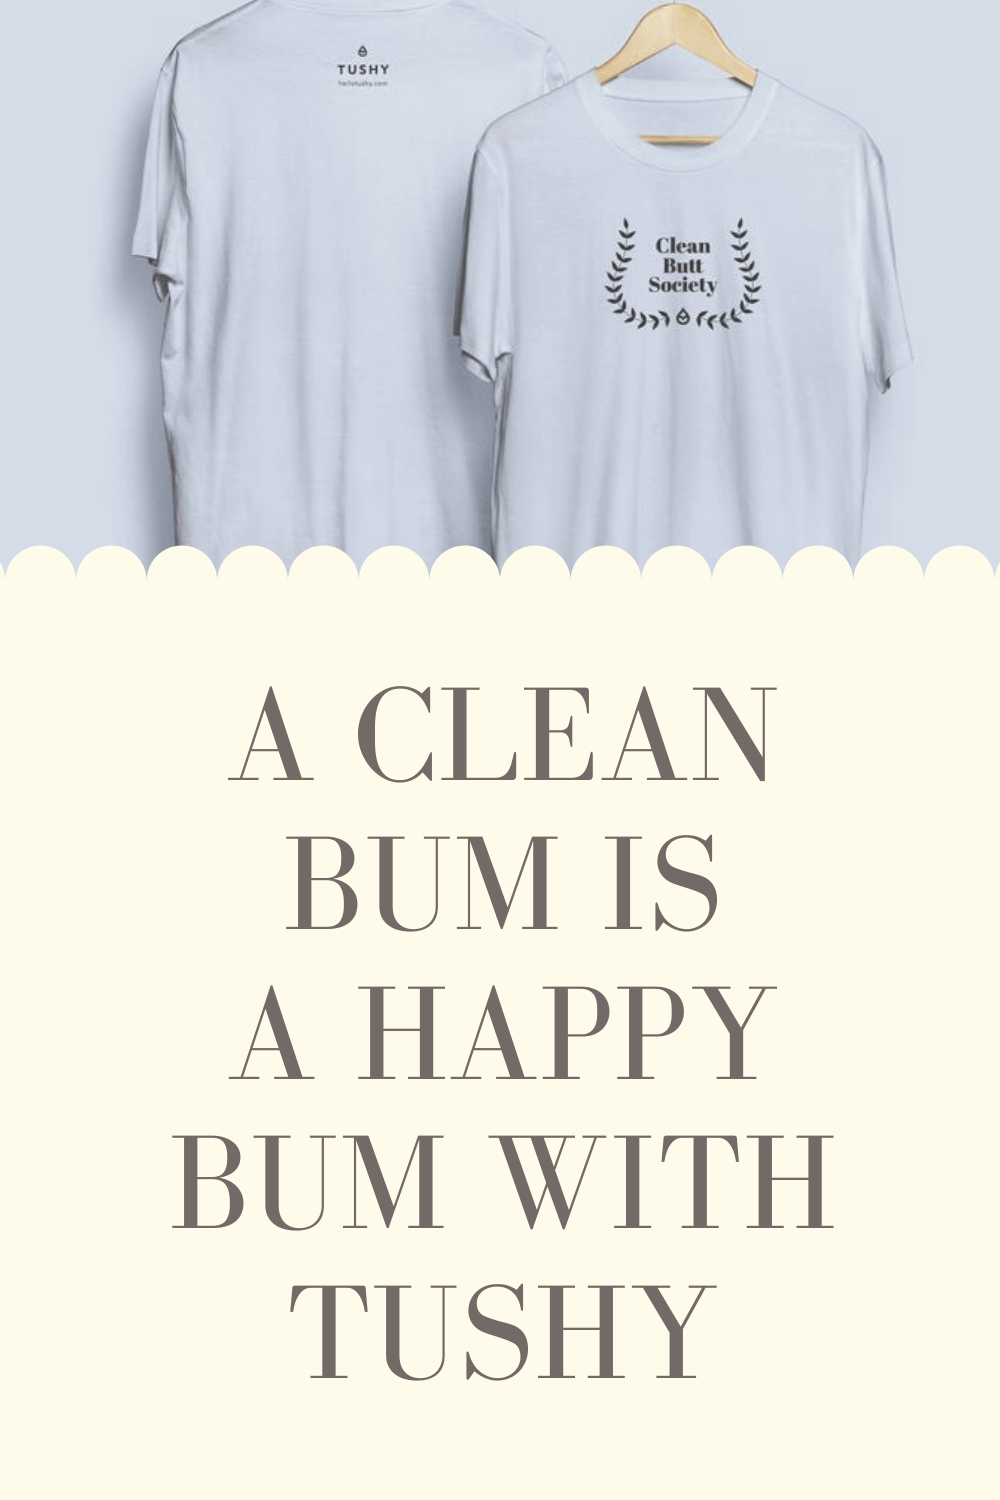 A Clean Bum is A Happy Bum with Tushy